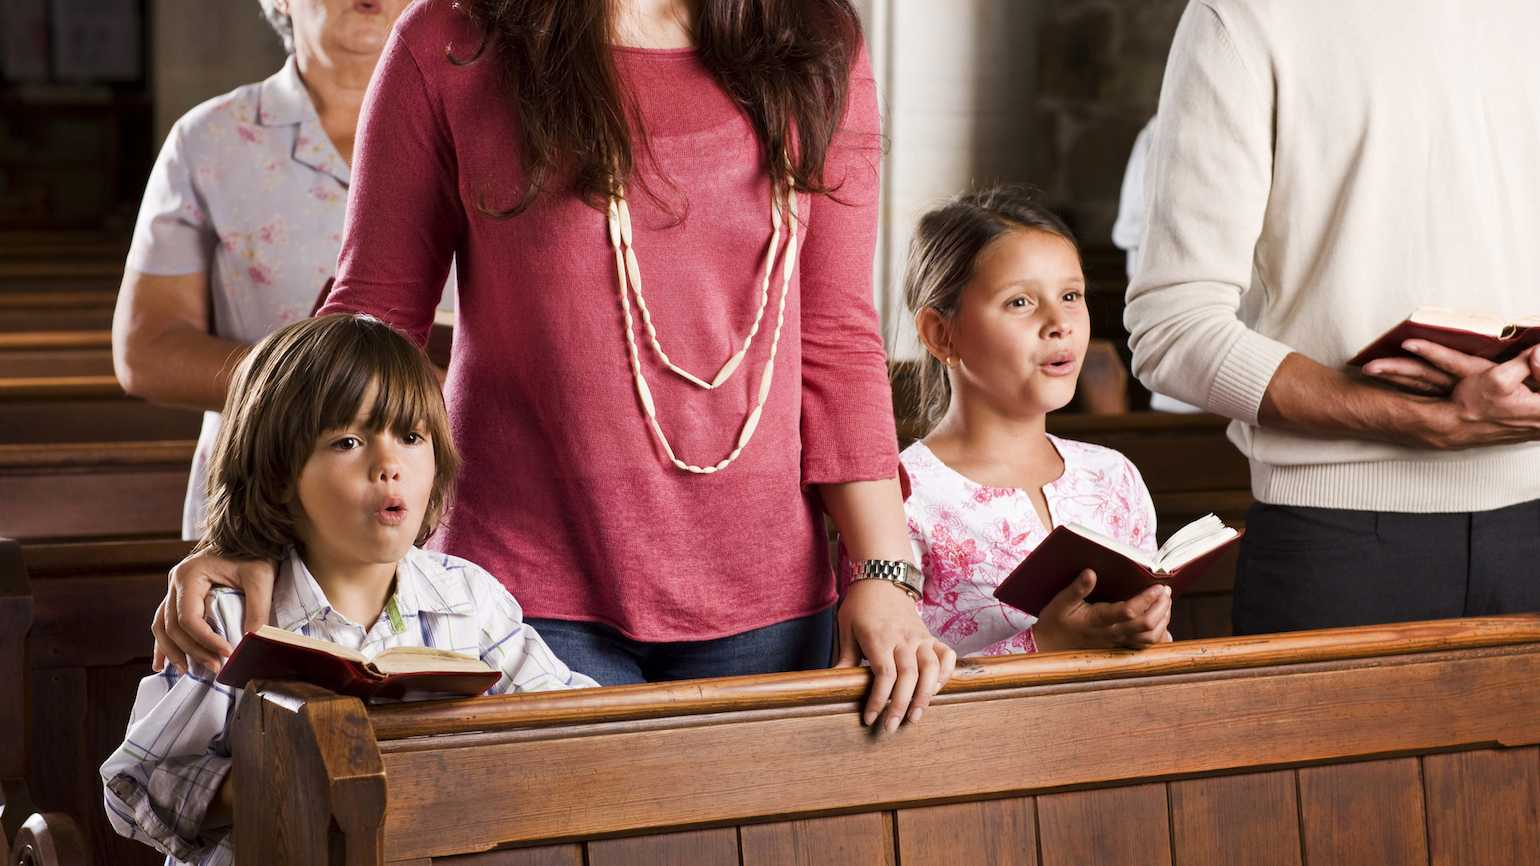 Children singing in church.